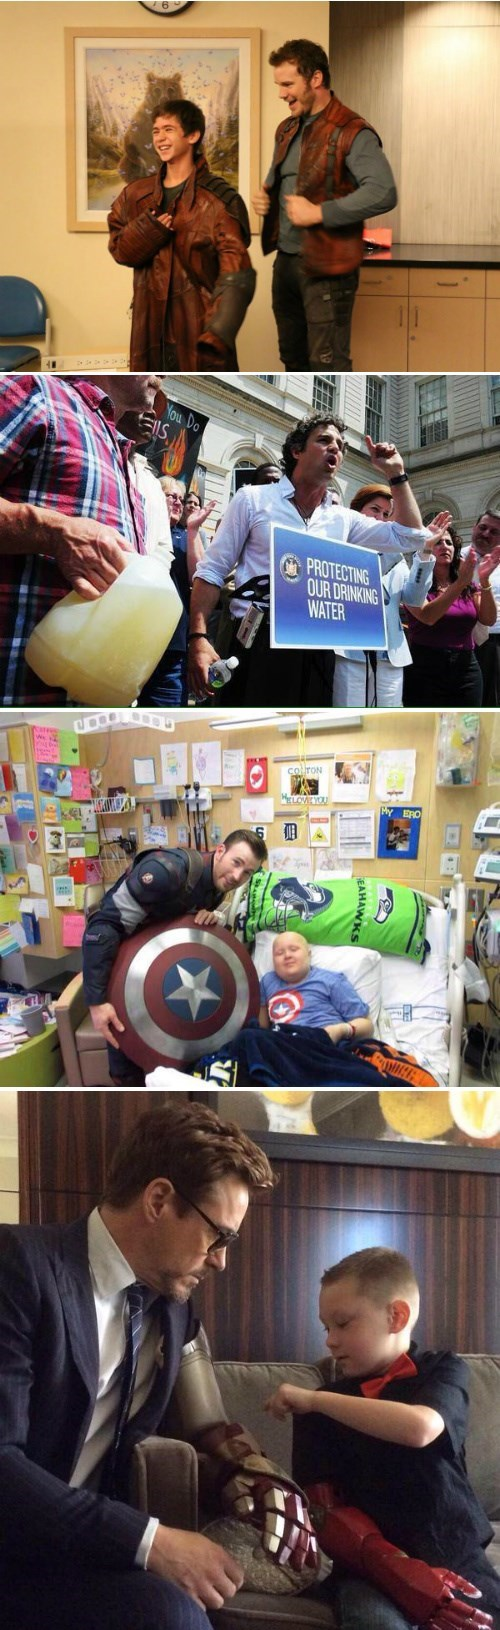 superheroes-avengers-marvel-mcu-actors-heroes-in-real-life